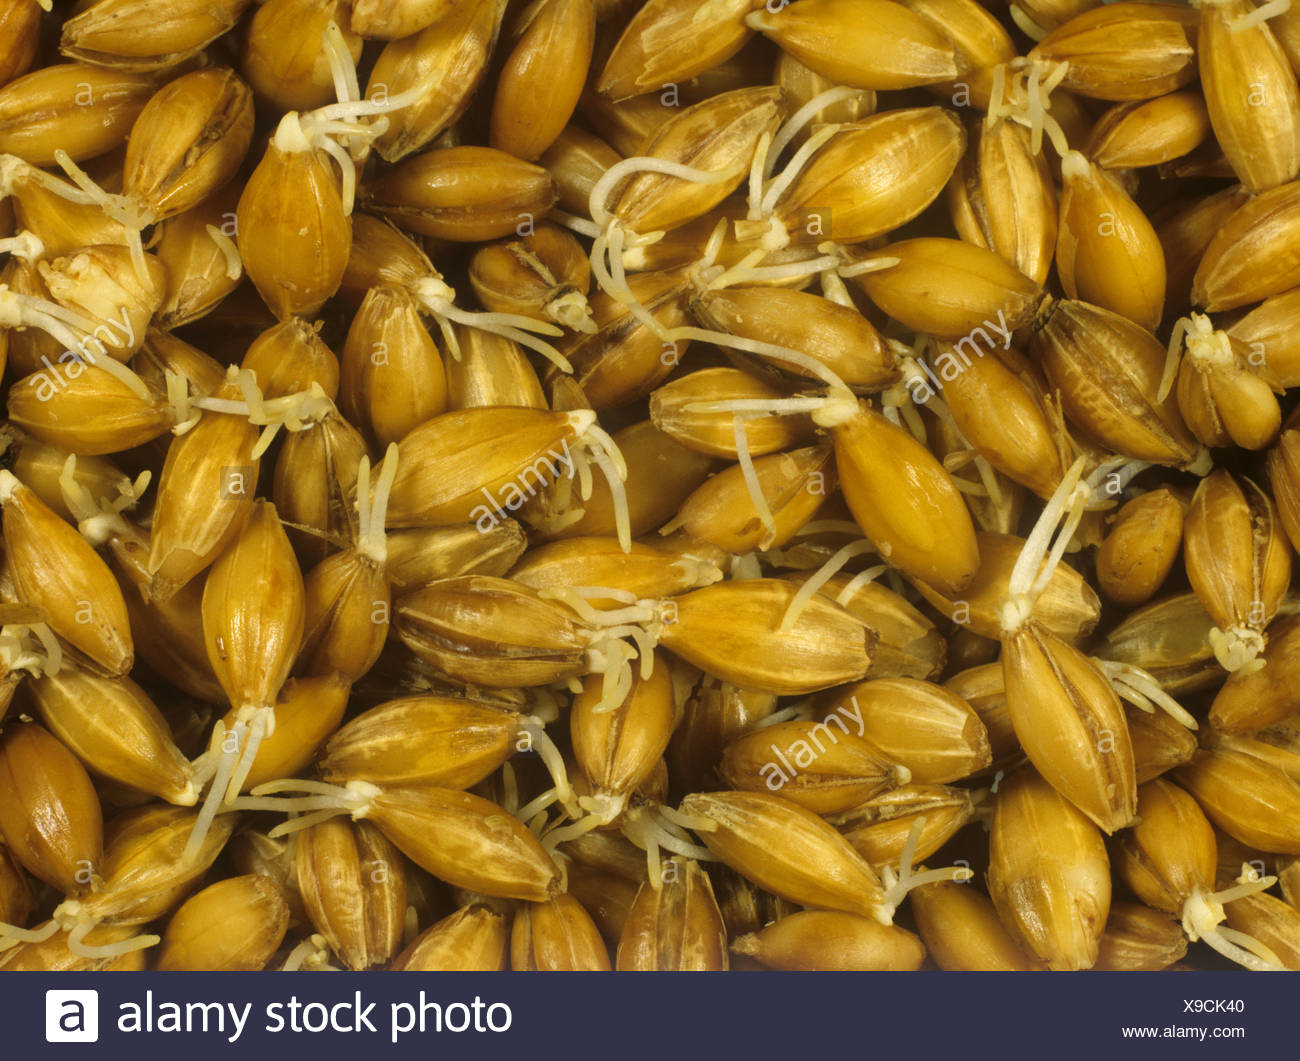 Process of malting barley seed germination stage beginning to chit - Stock Image